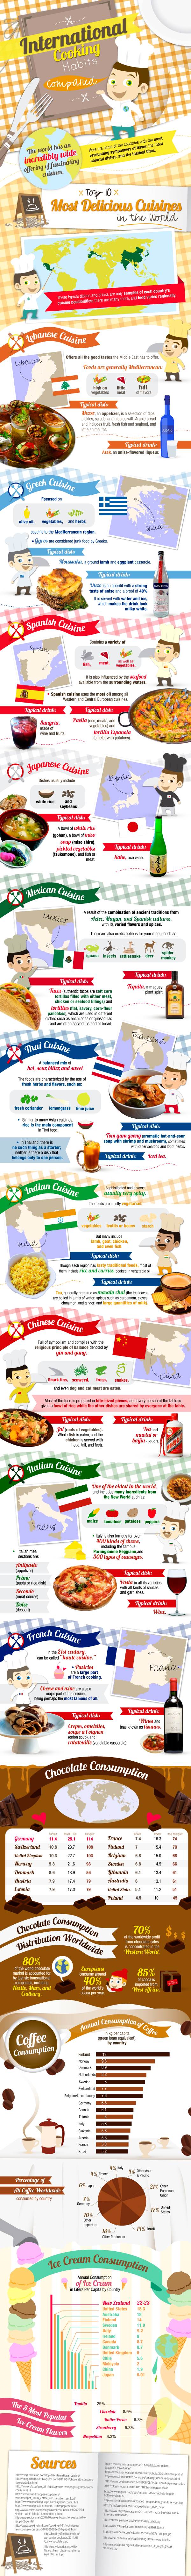 International Cooking Habits Compared